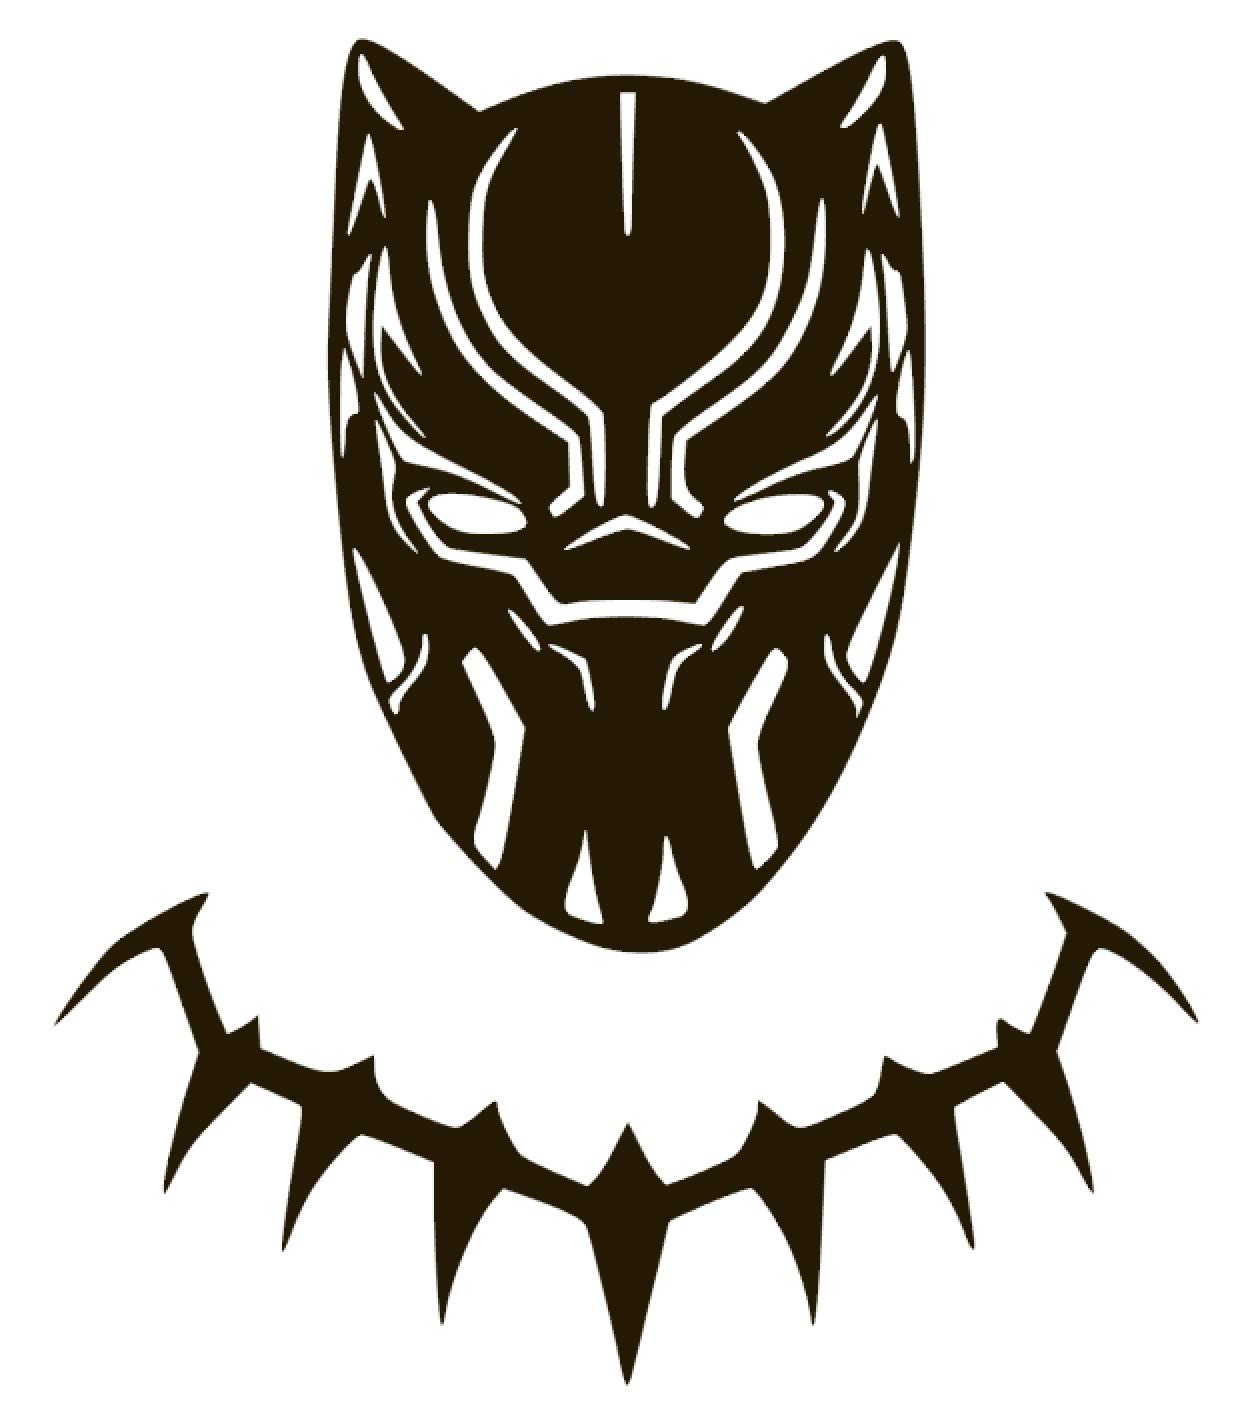 Amazon com black panther new movie vinyl sticker decals for car bumper window macbook pro laptop ipad iphone 3 x 2 5 black home improvement